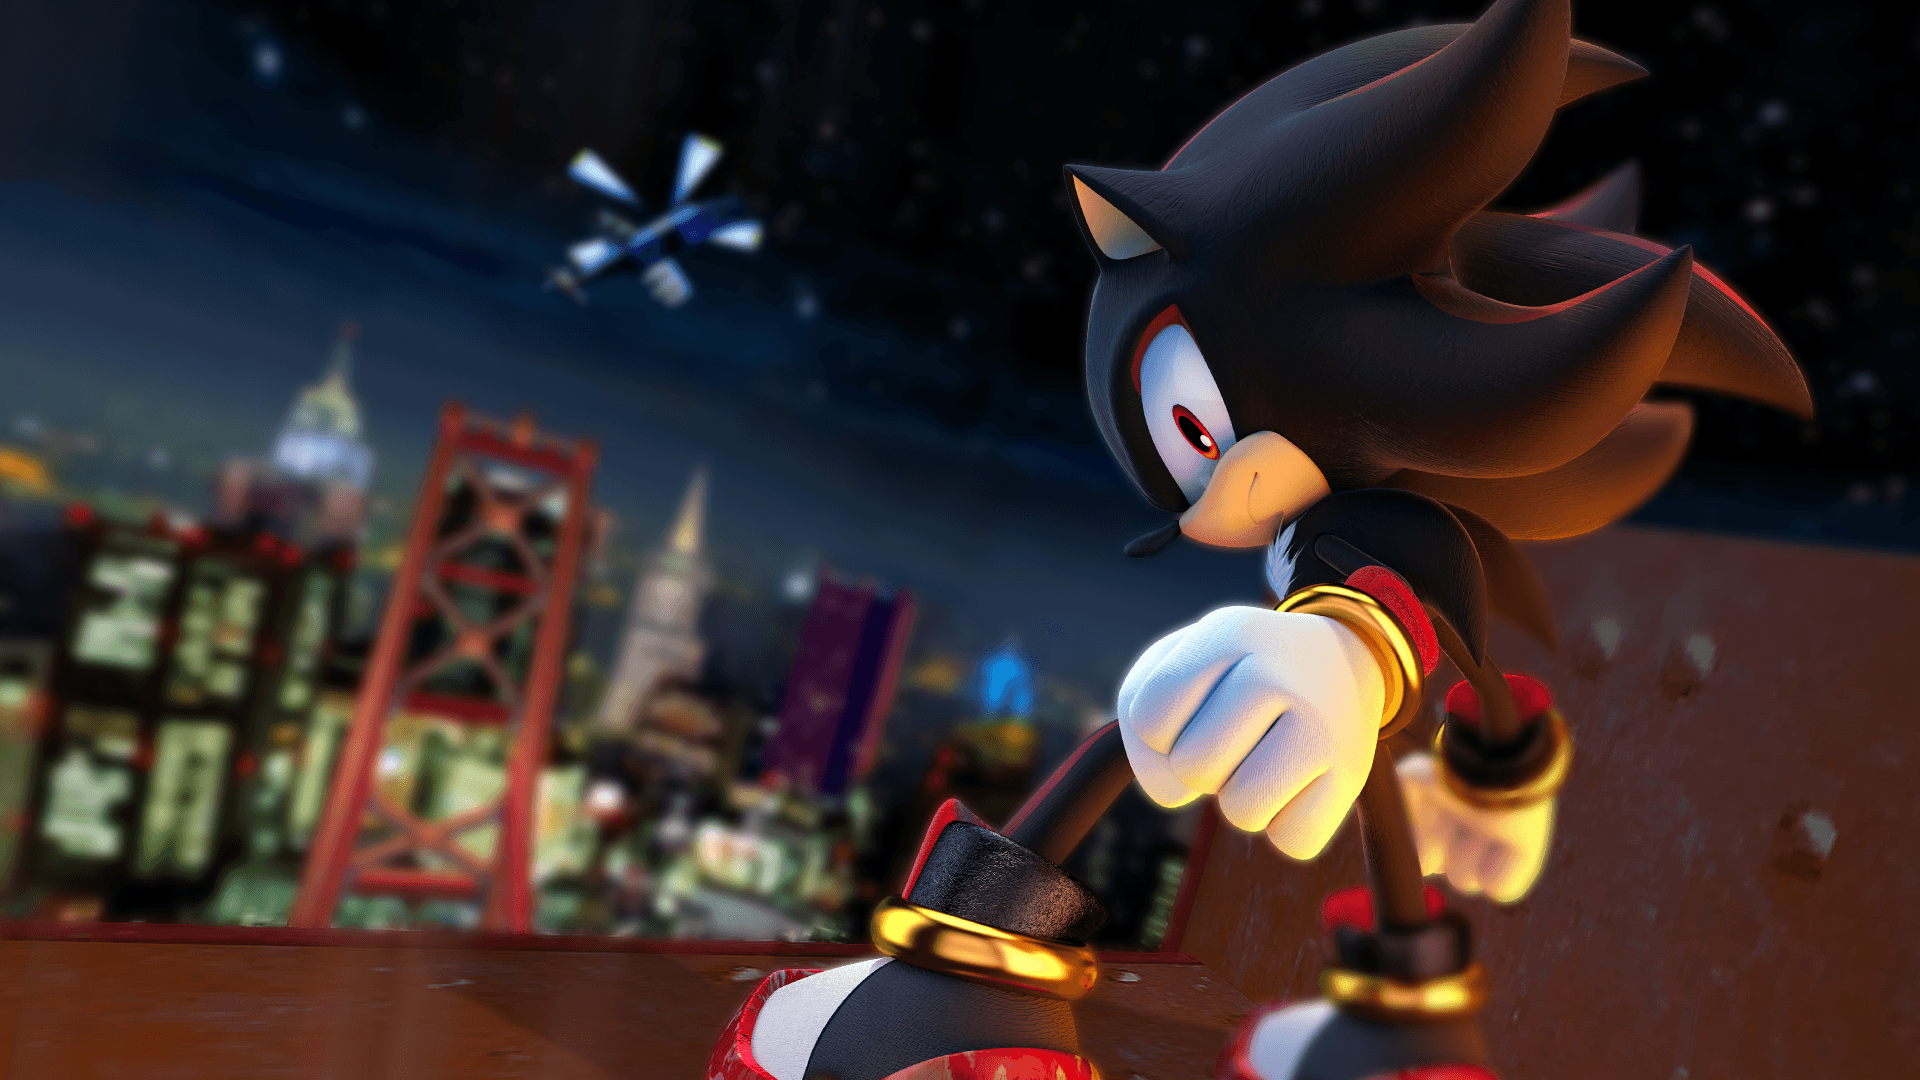 Shadow The Hedgehog Wallpapers Top Free Shadow The